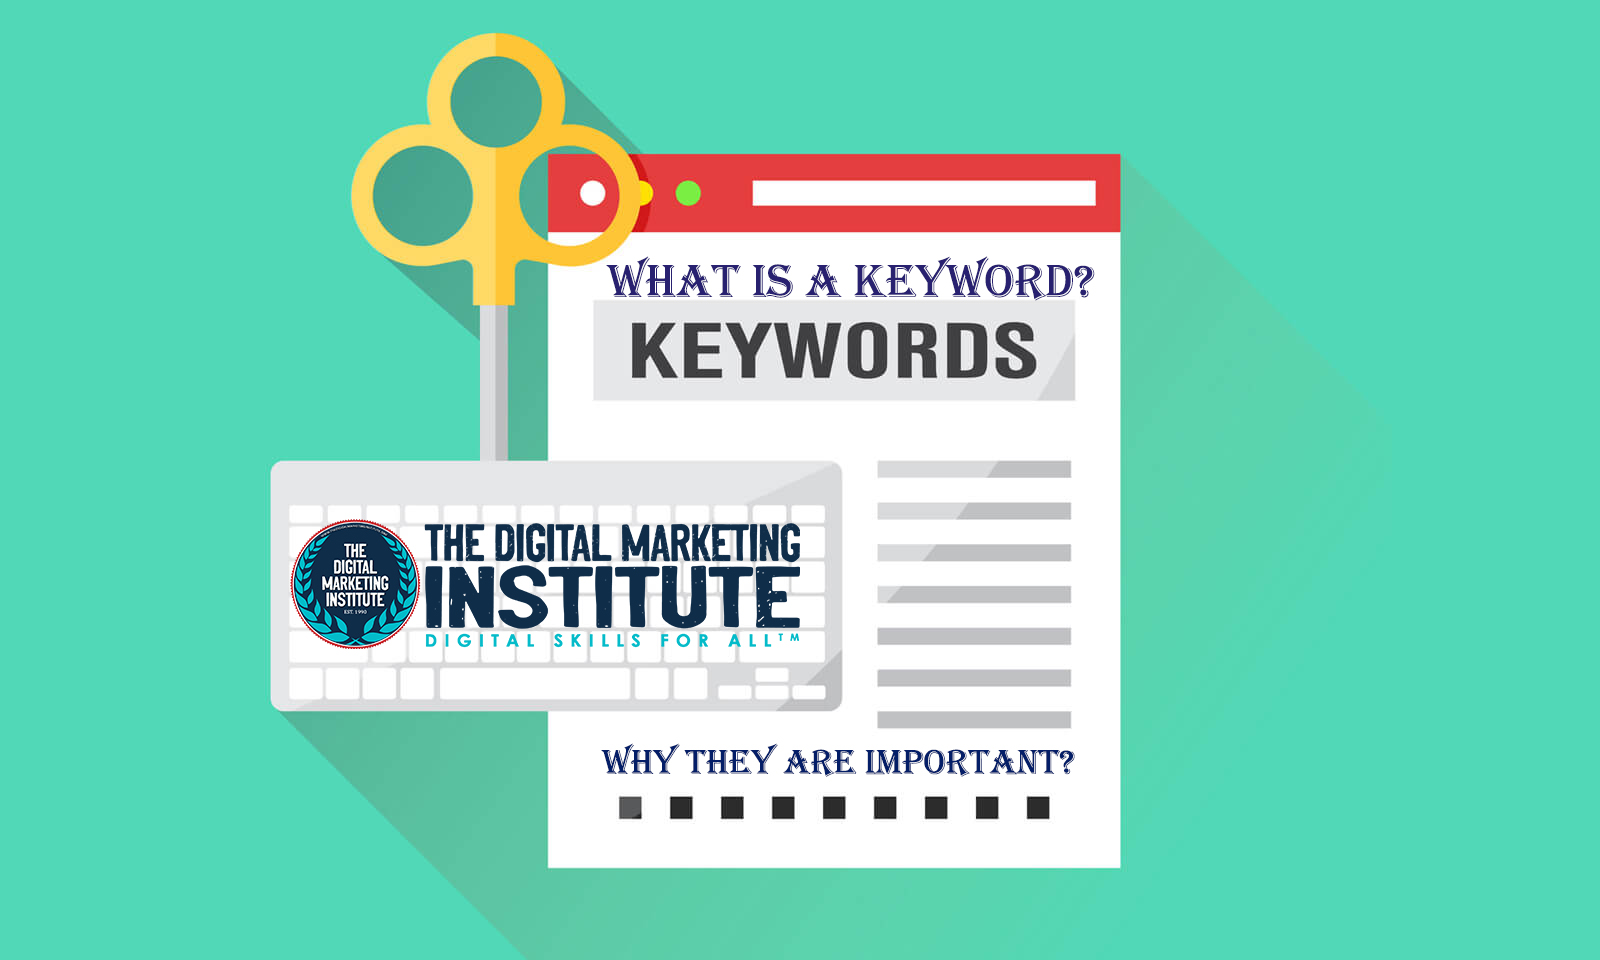 What is a keyword? and Why they are important?